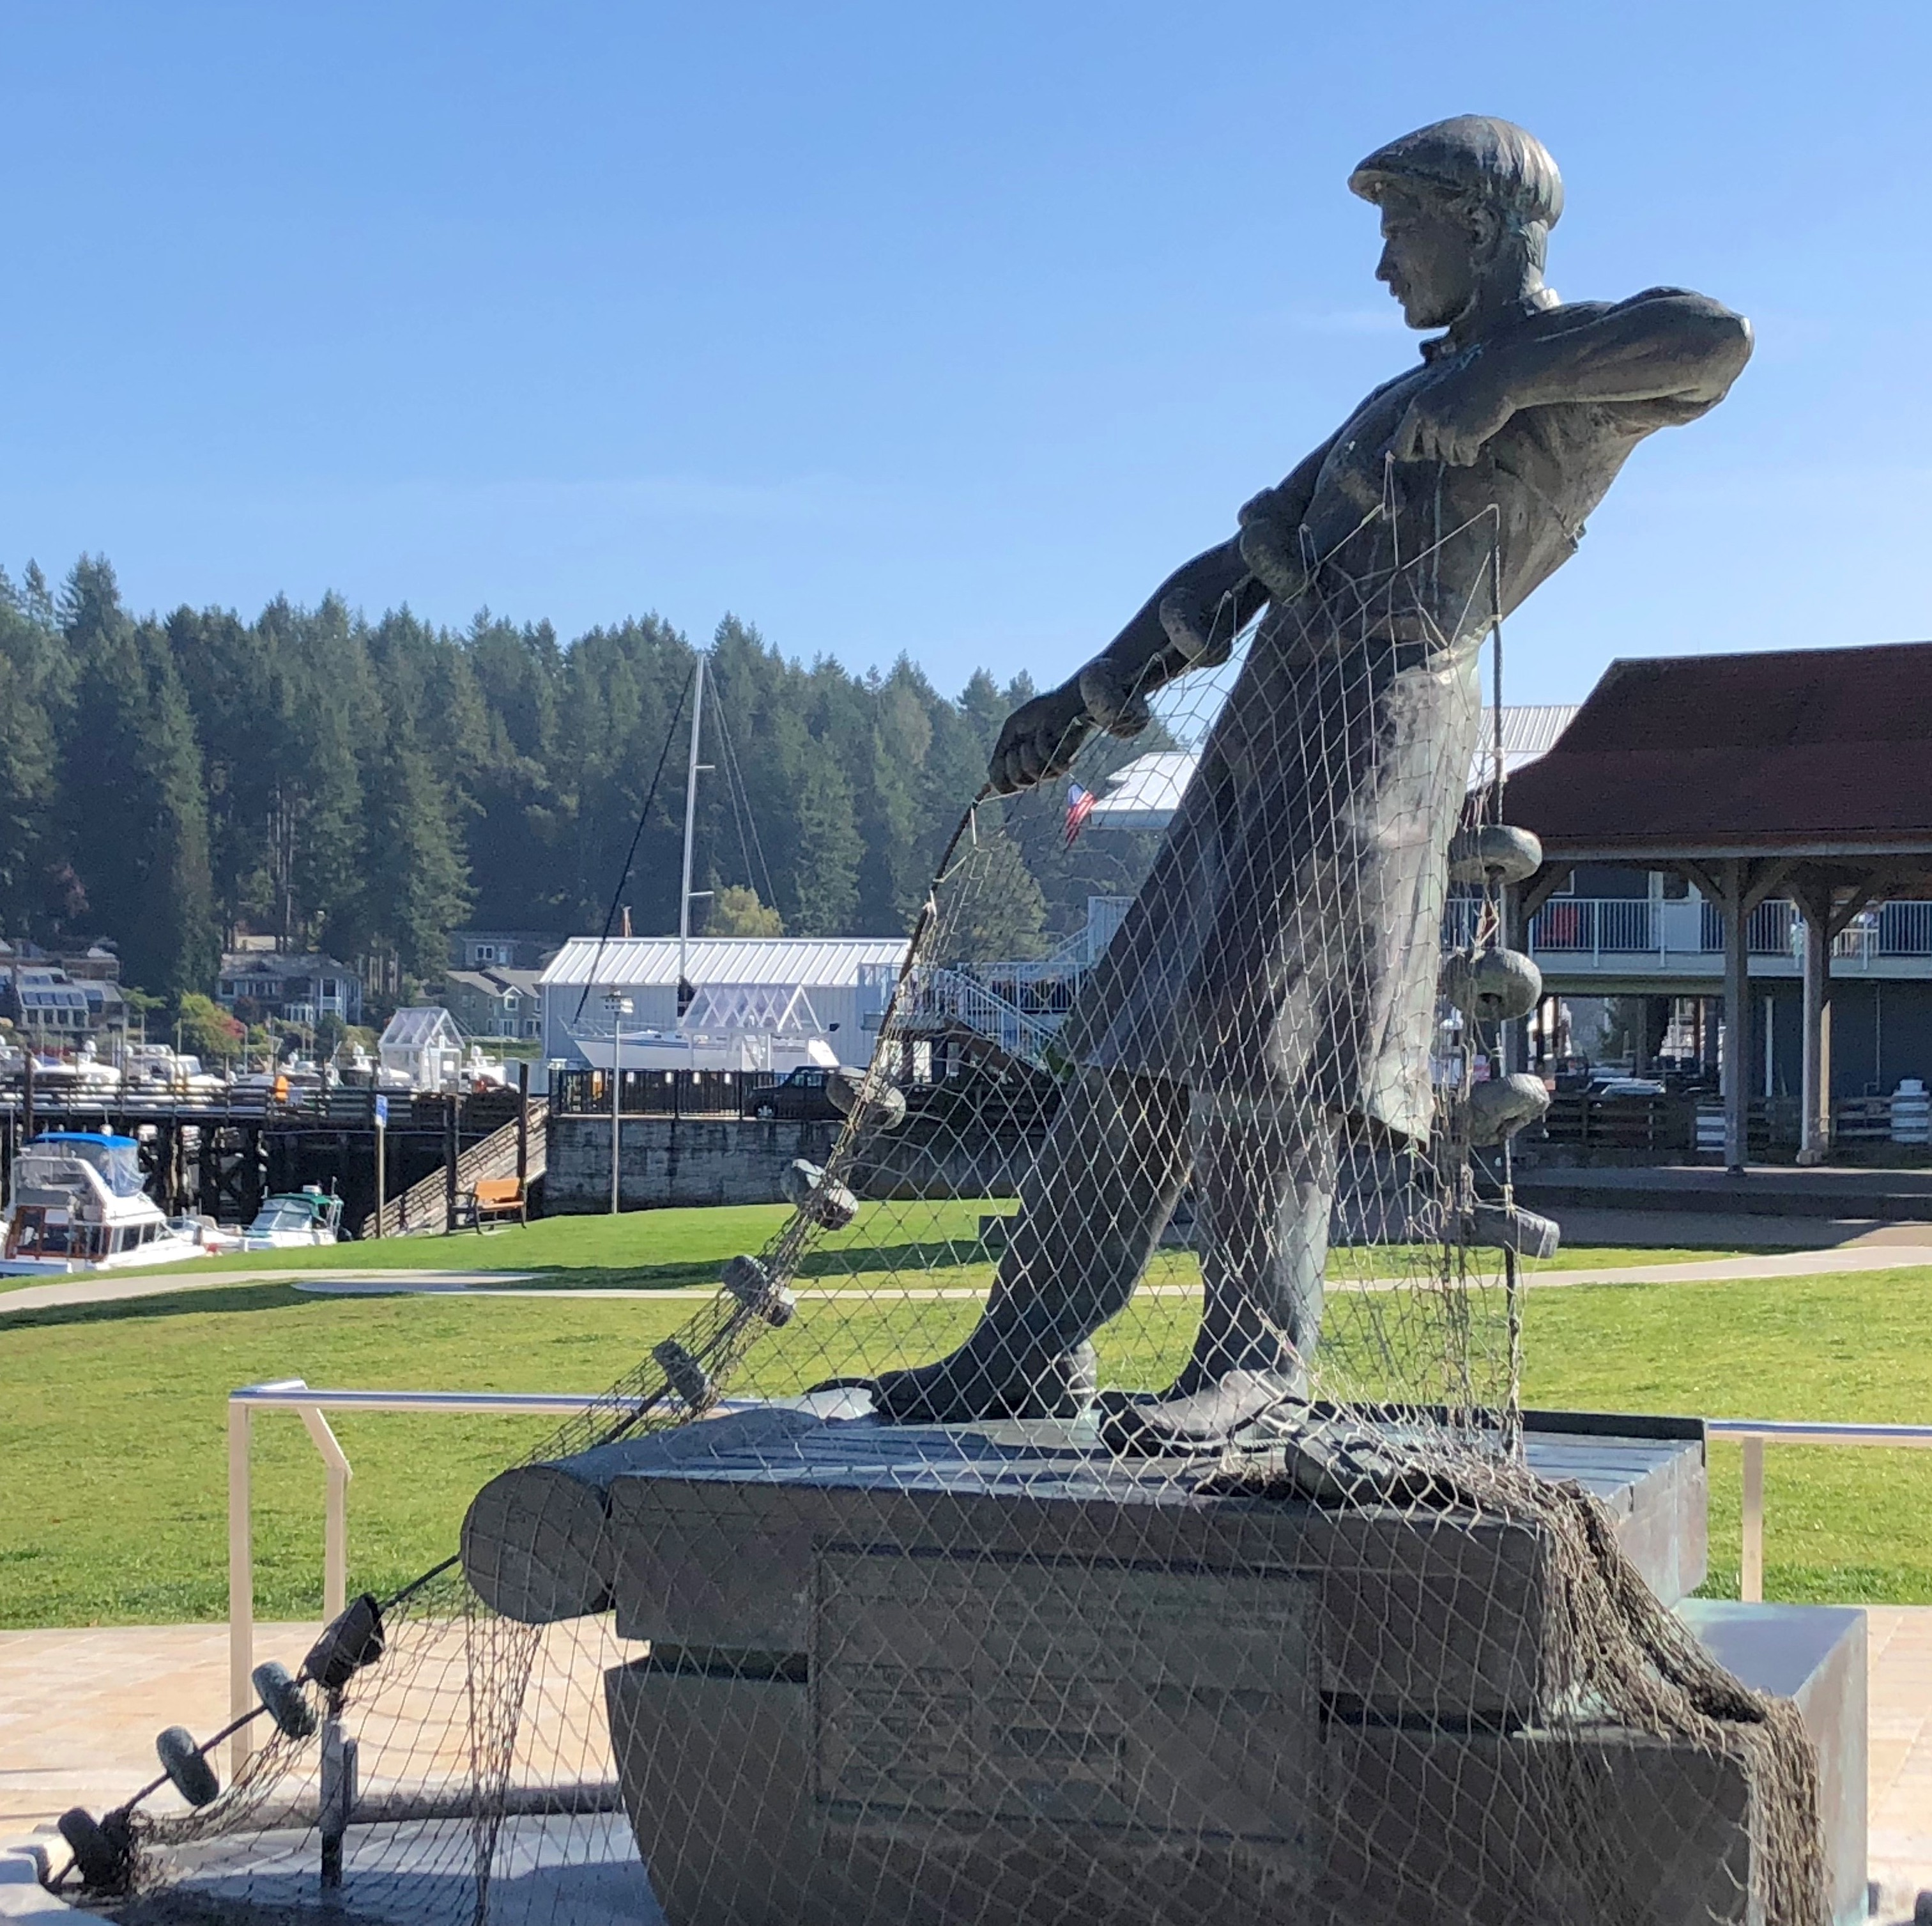 A statue at the park next door to Gig Harbor Marina shows a fisherman reeling in a net.